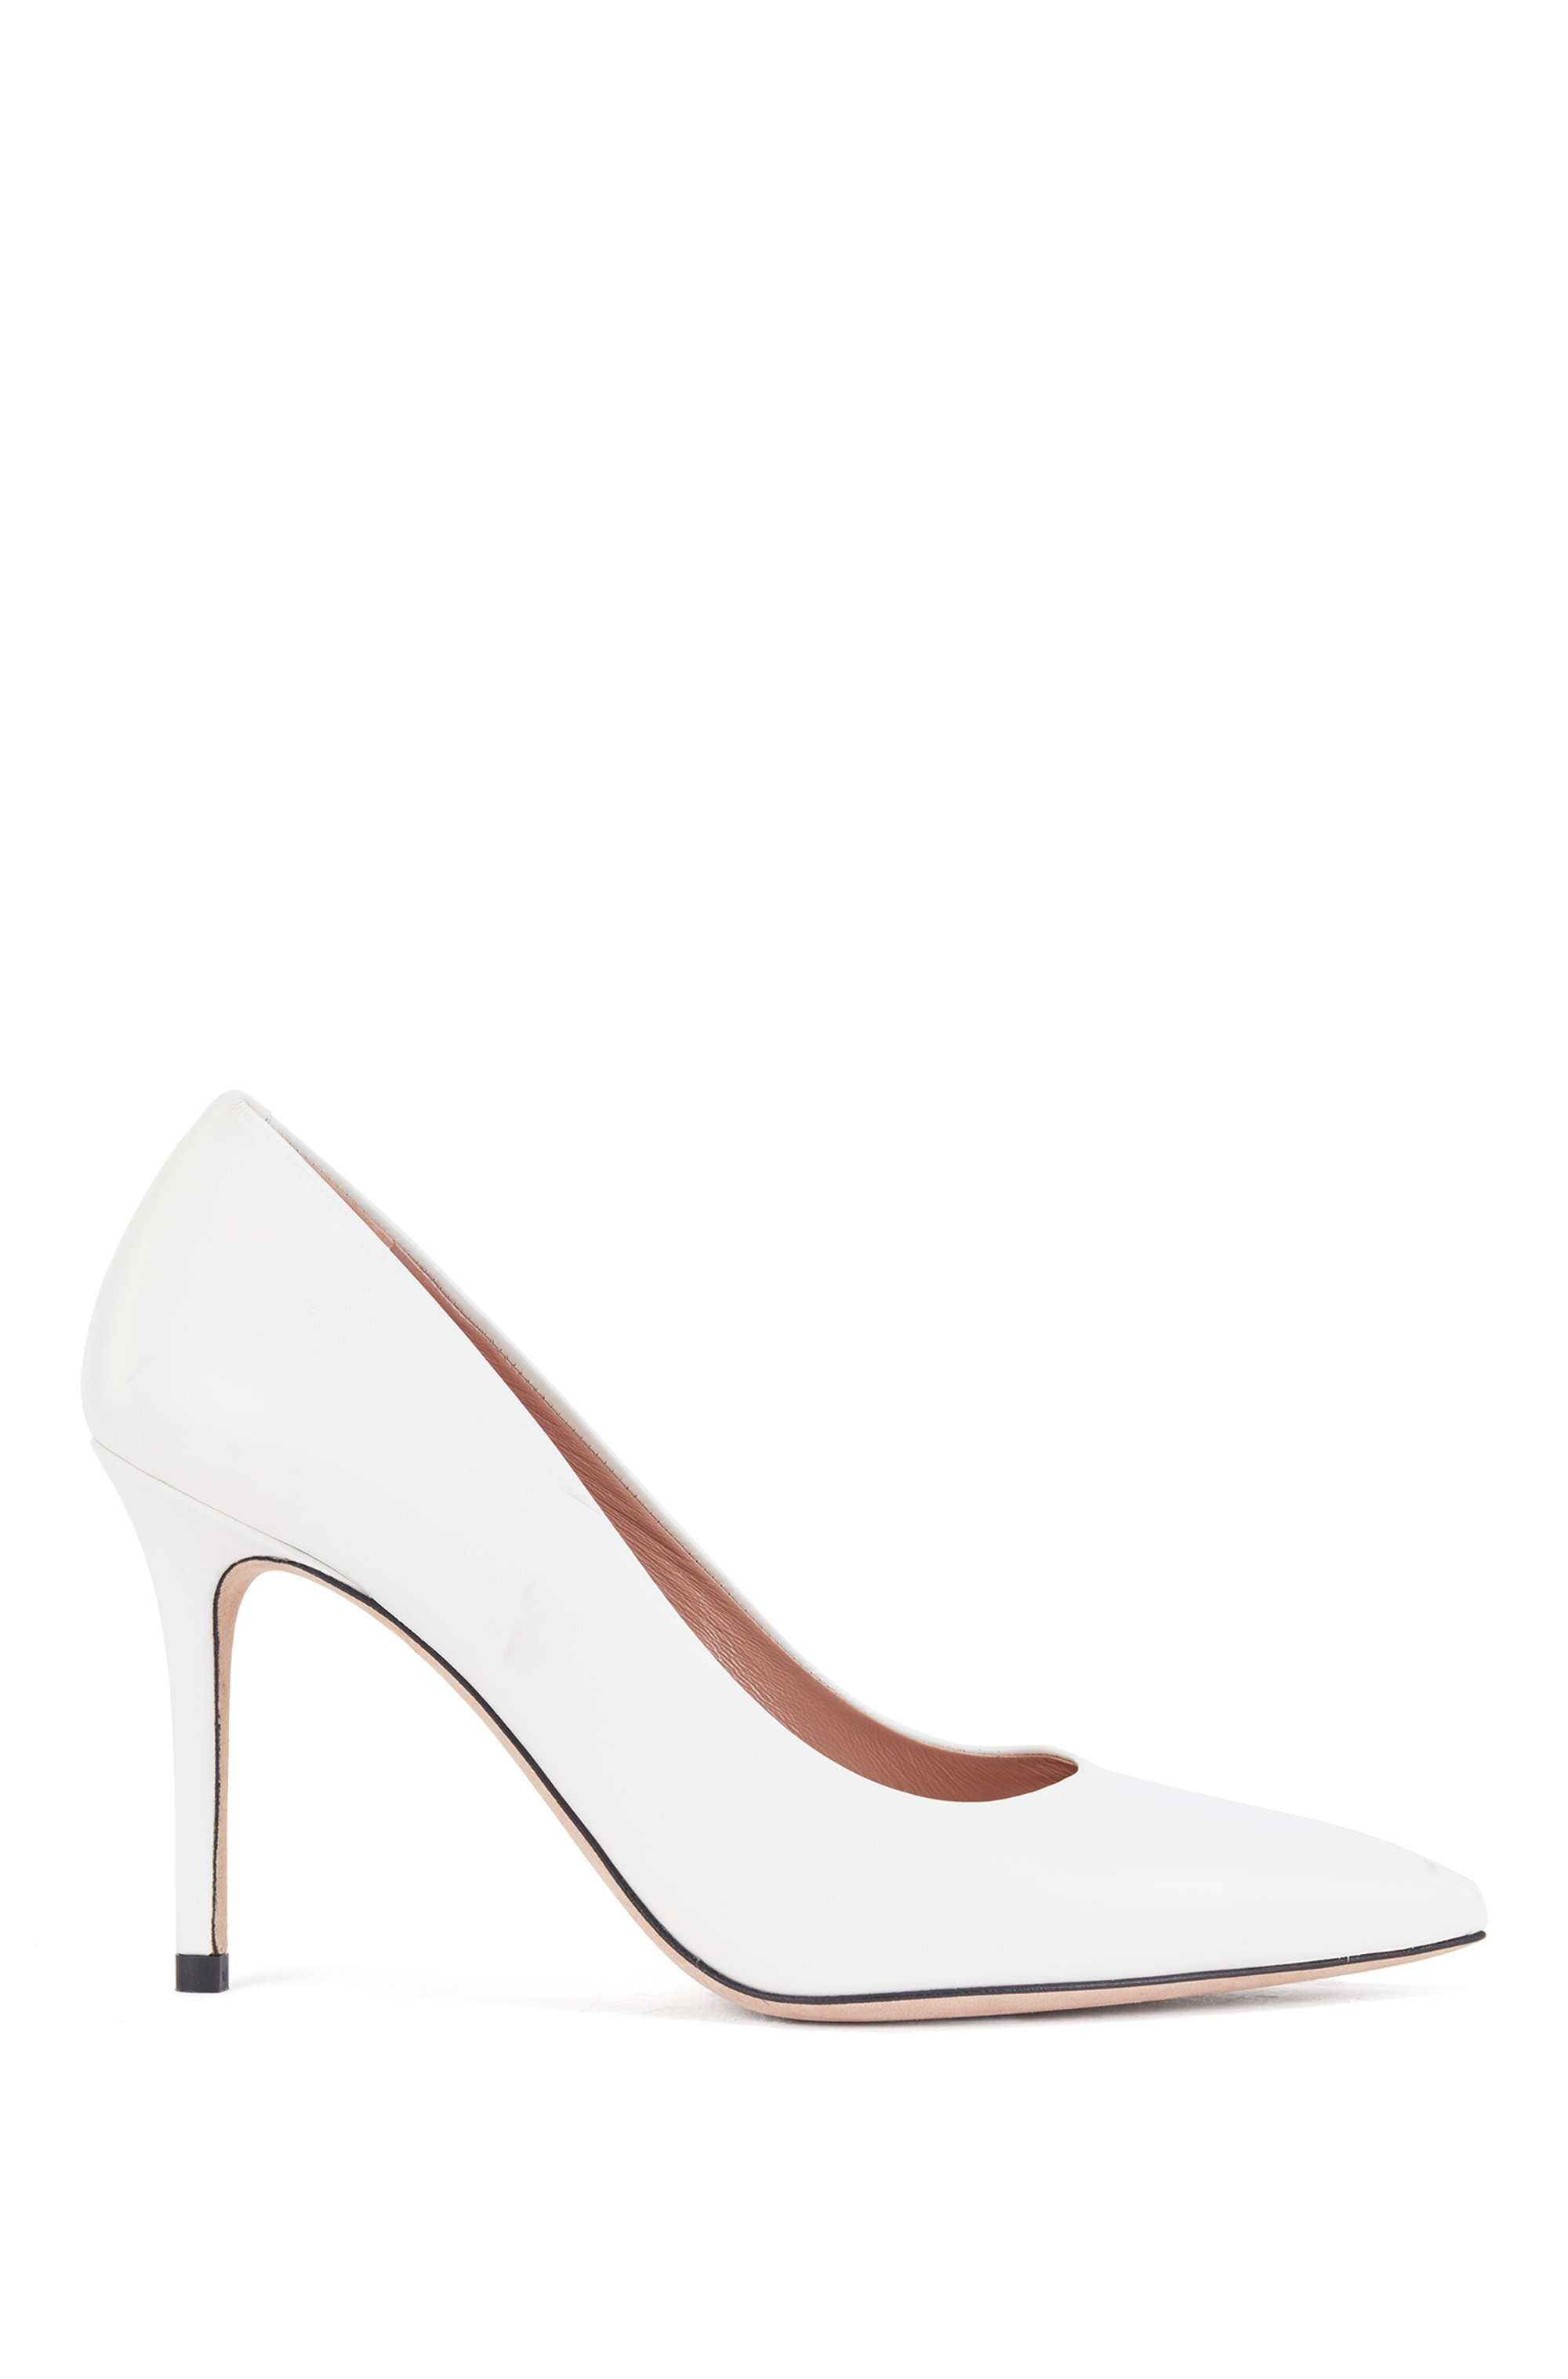 Pointed-toe court shoes in Italian leather, White